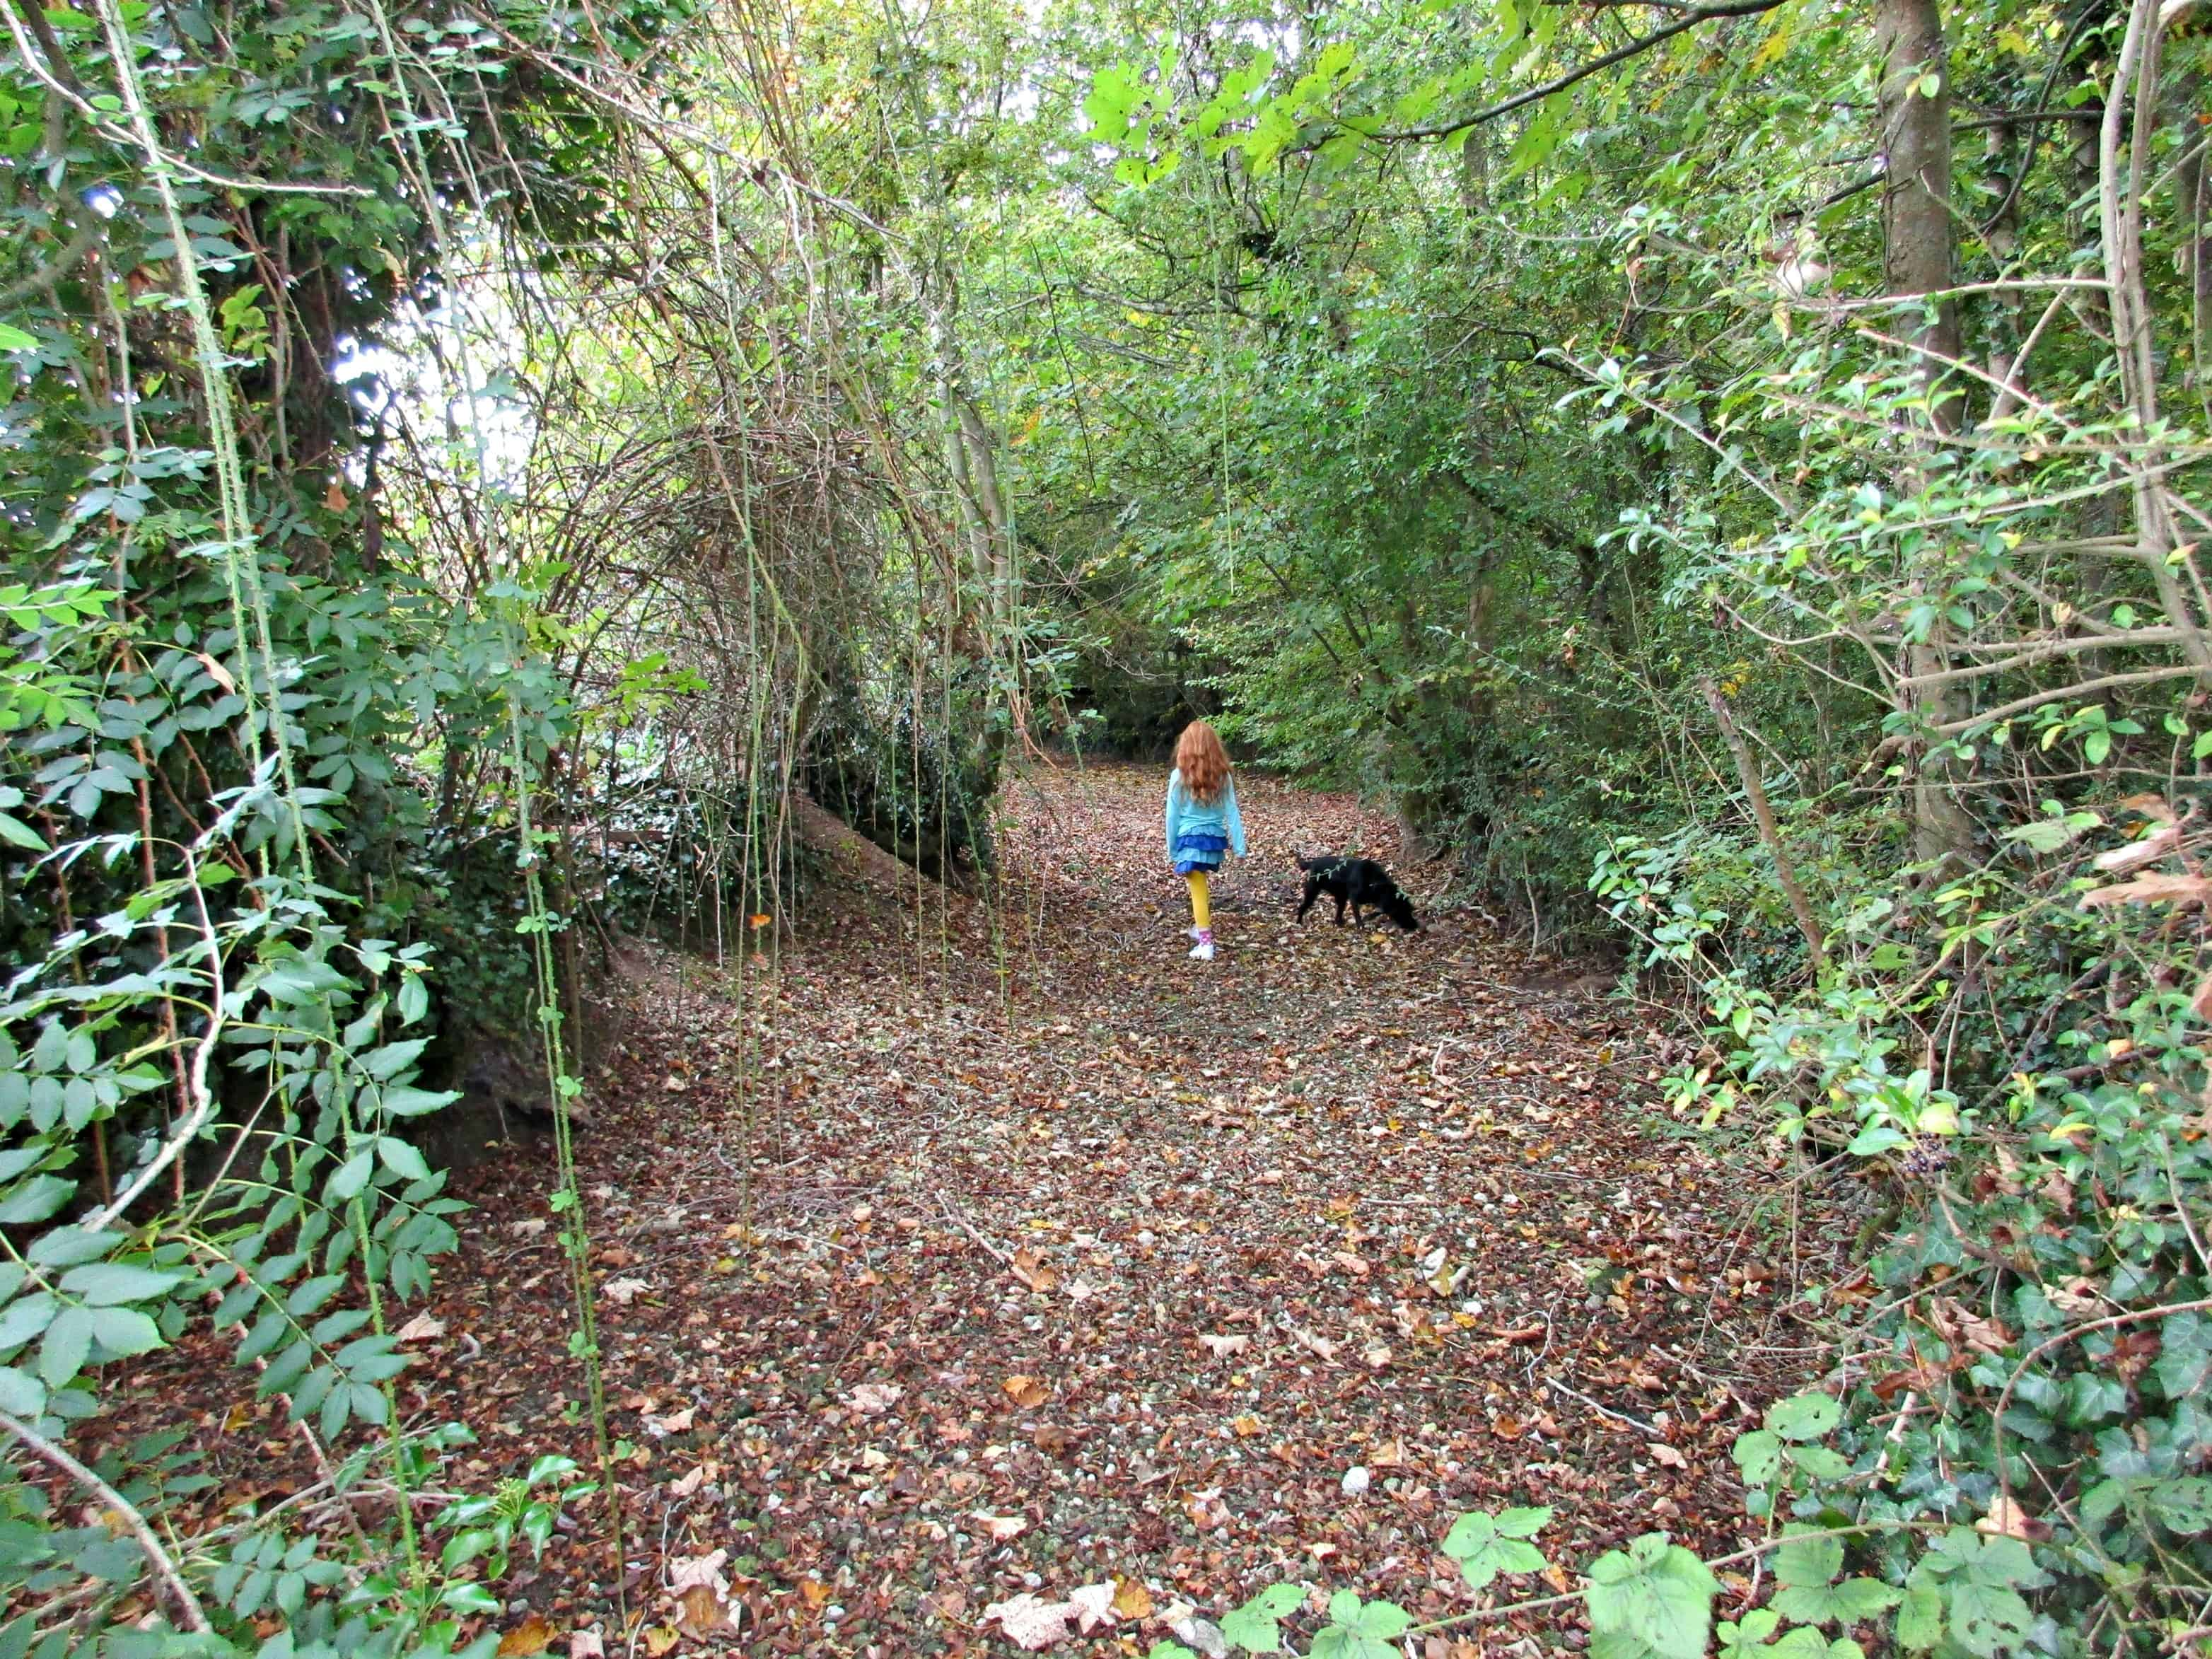 We have set ourselves the challenge of learning to identify all the wild plants along our favourite walk this year